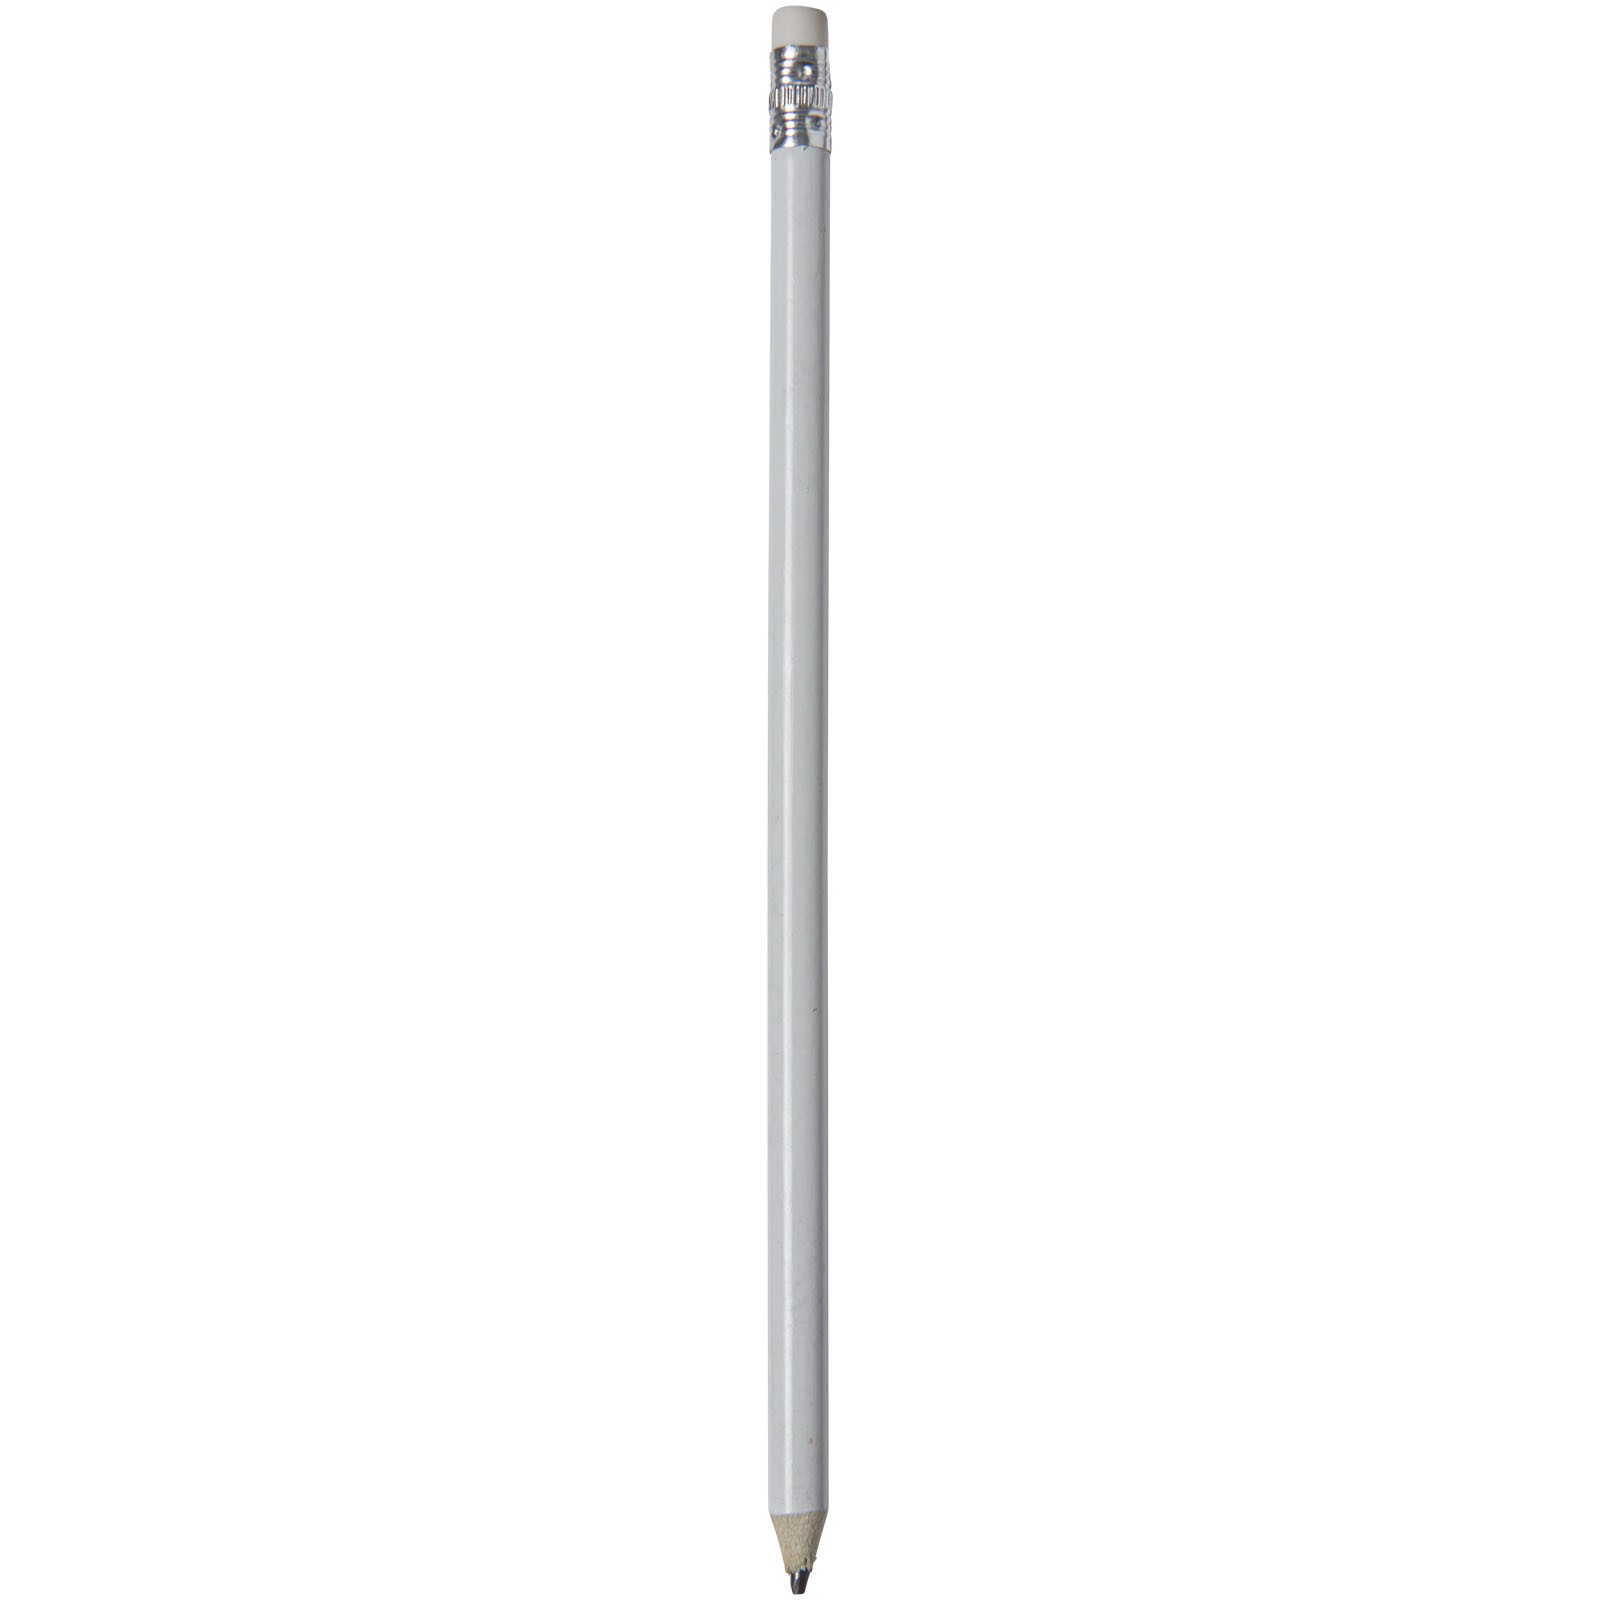 Alegra pencil with coloured barrel - White